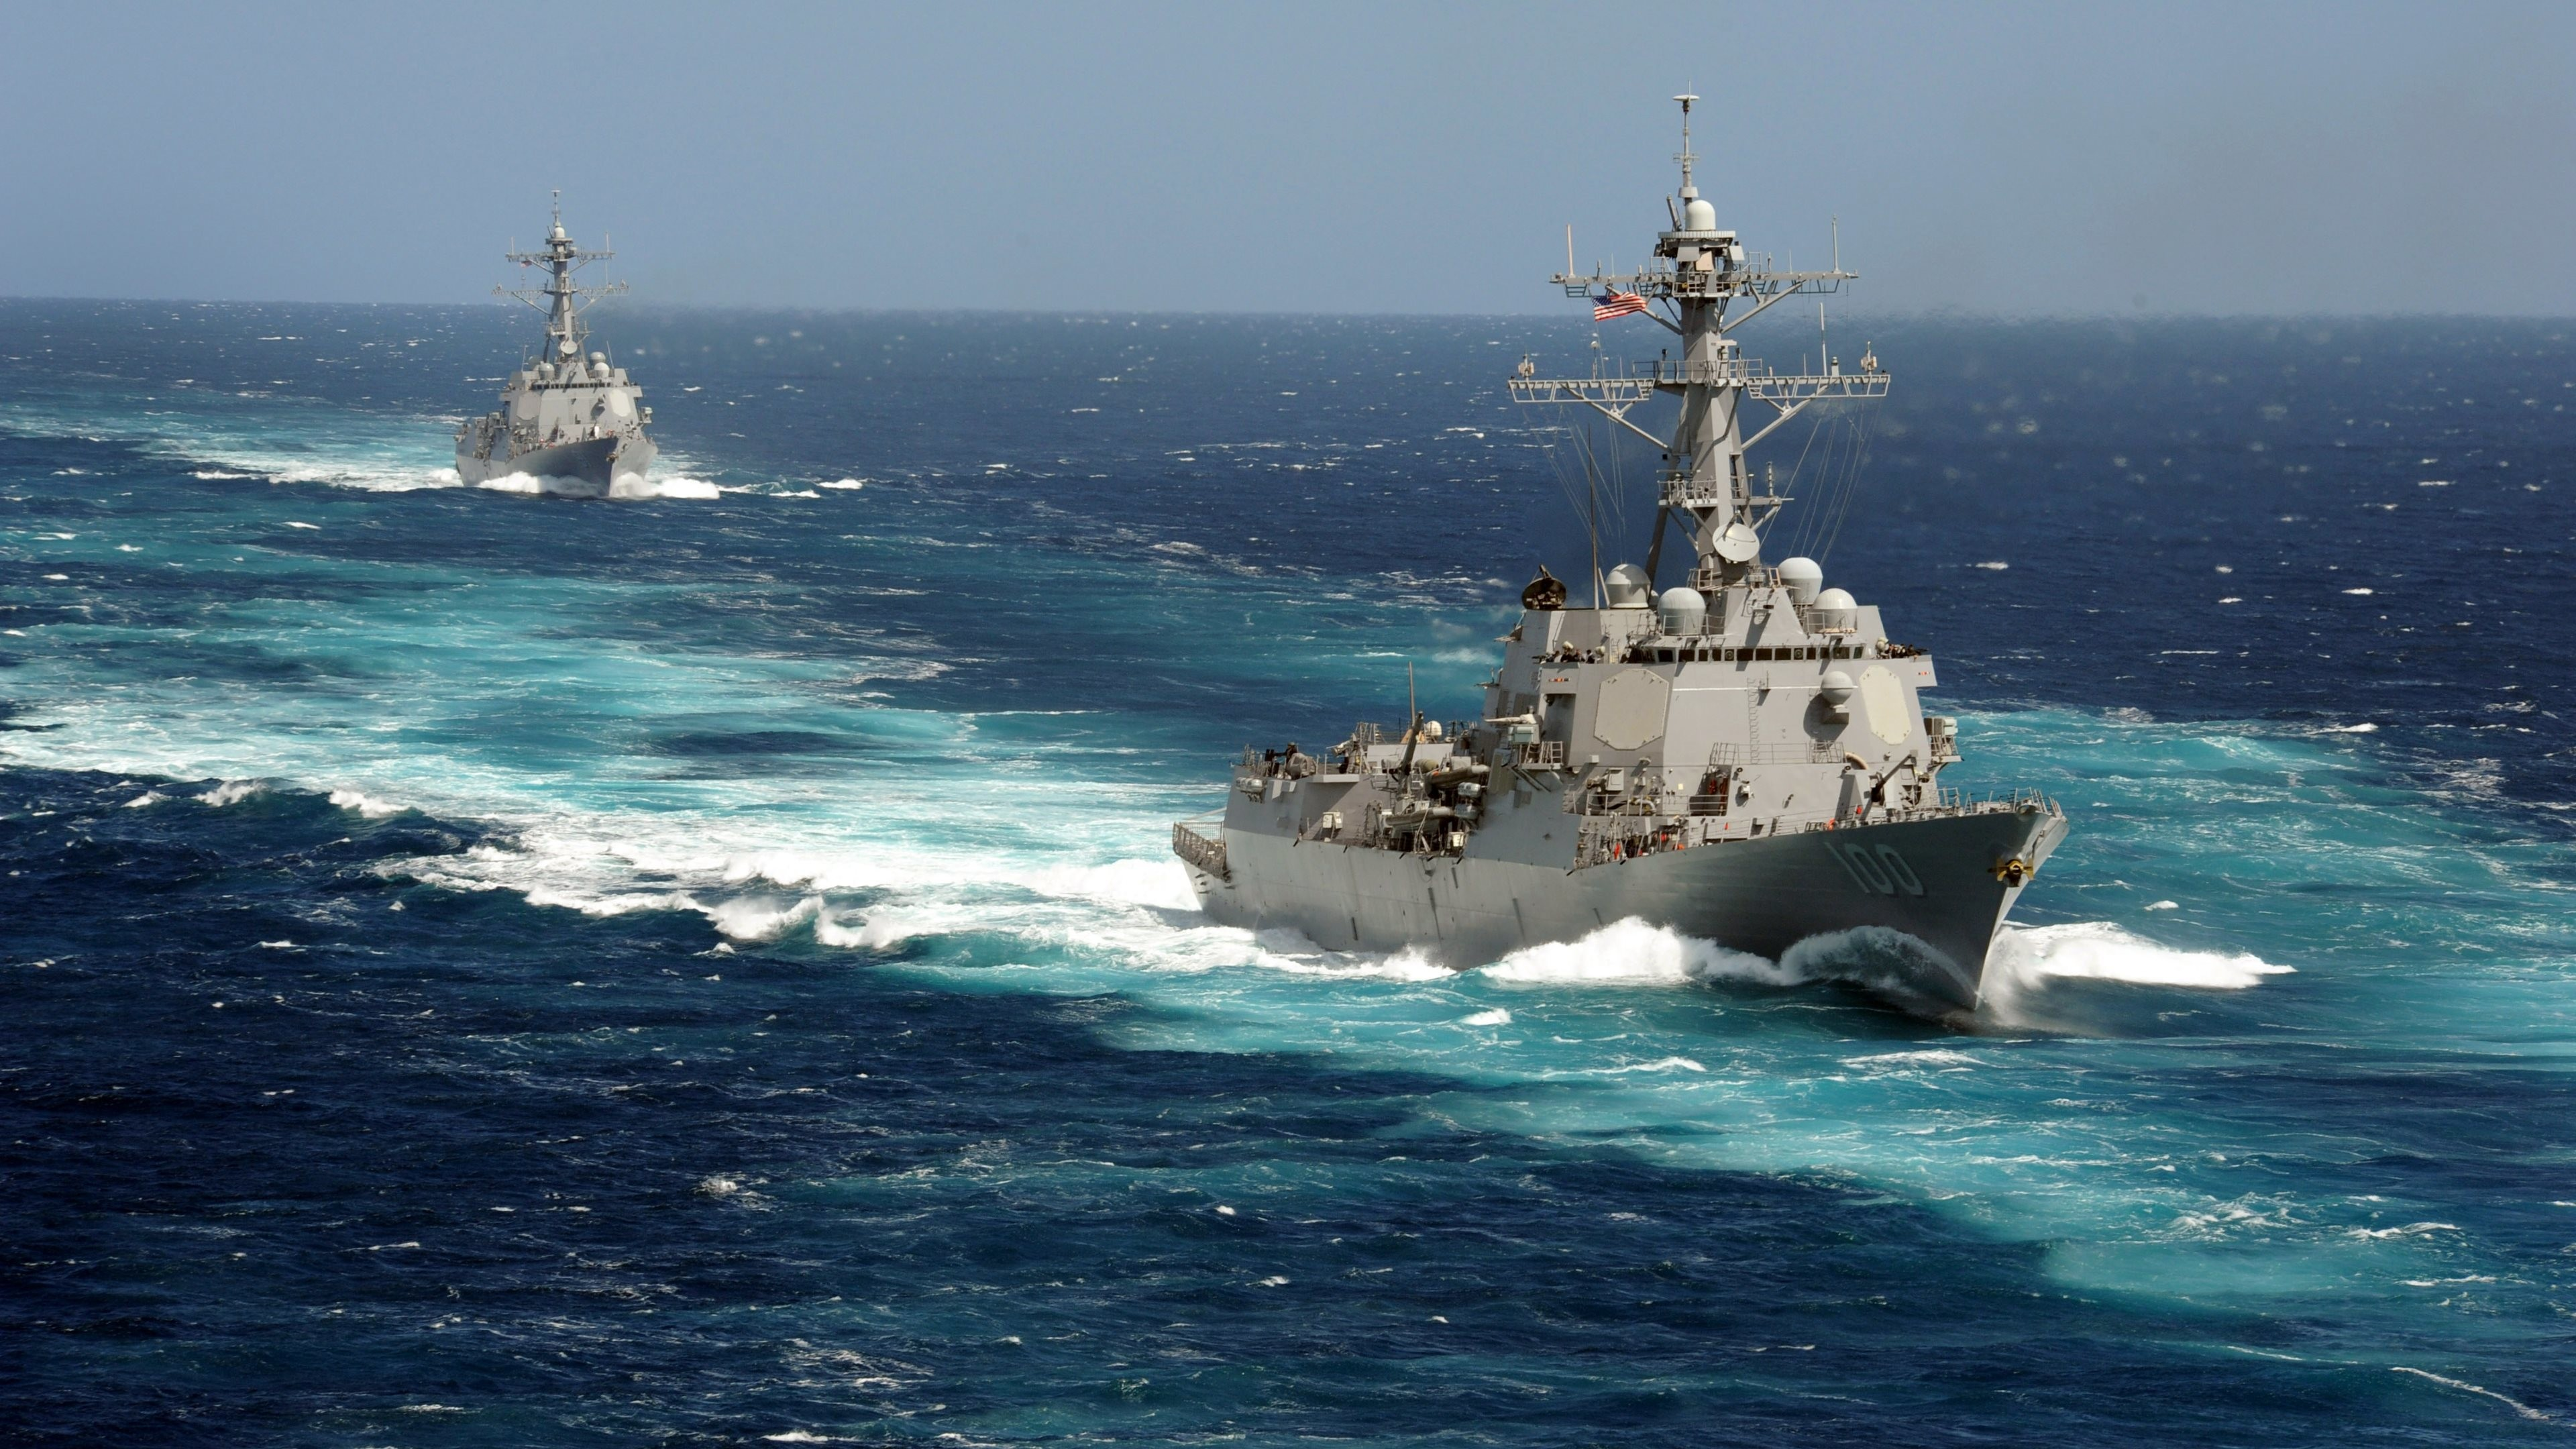 Wallpaper: Naval Ships of the US Army. Ultra HD 4K 3840×2160